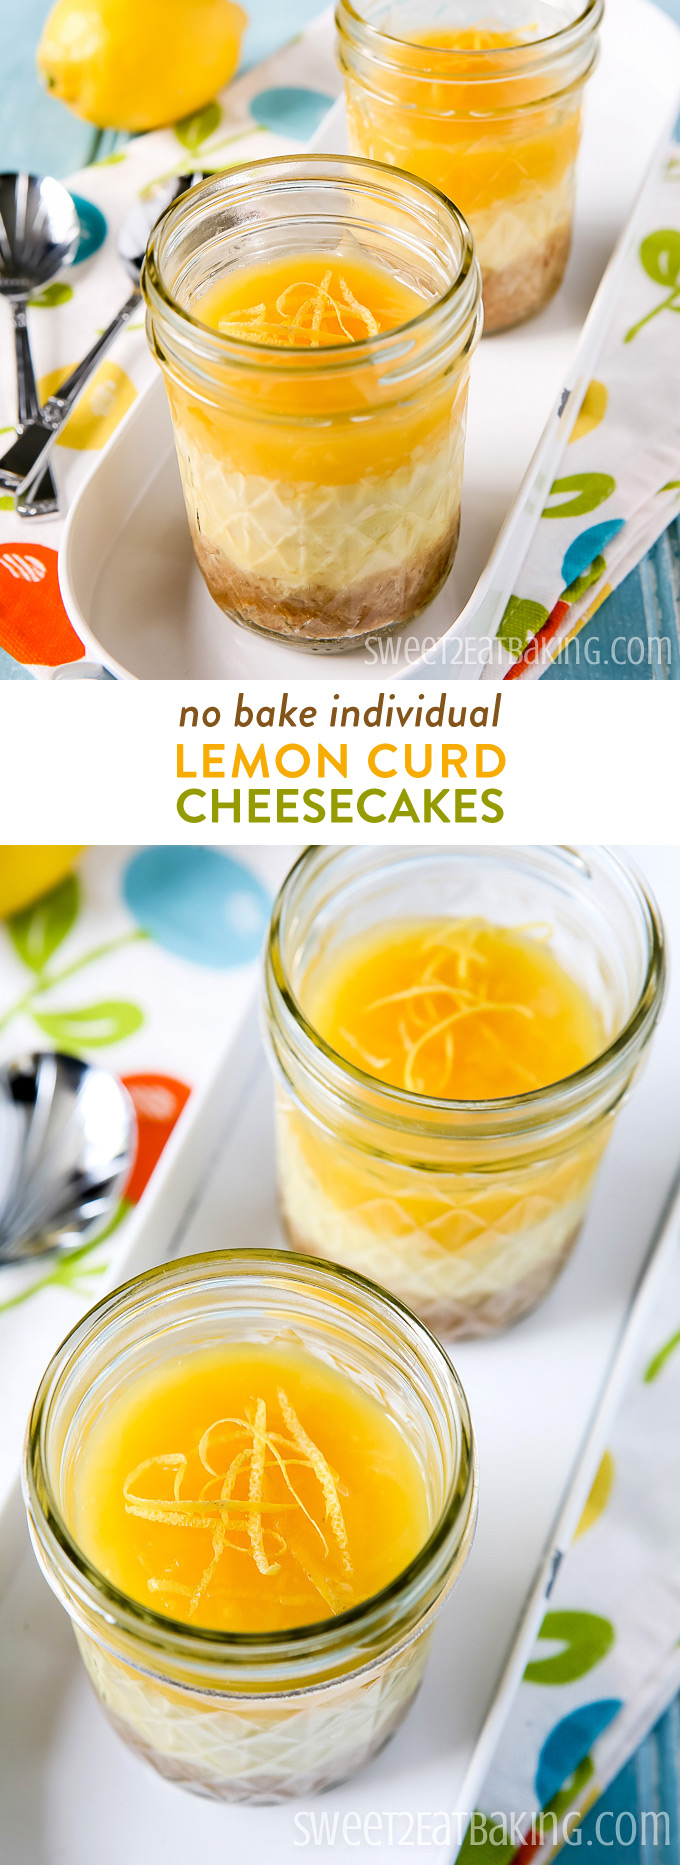 No Bake Individual Lemon Curd Cheesecakes Recipe by Sweet2EatBaking.com